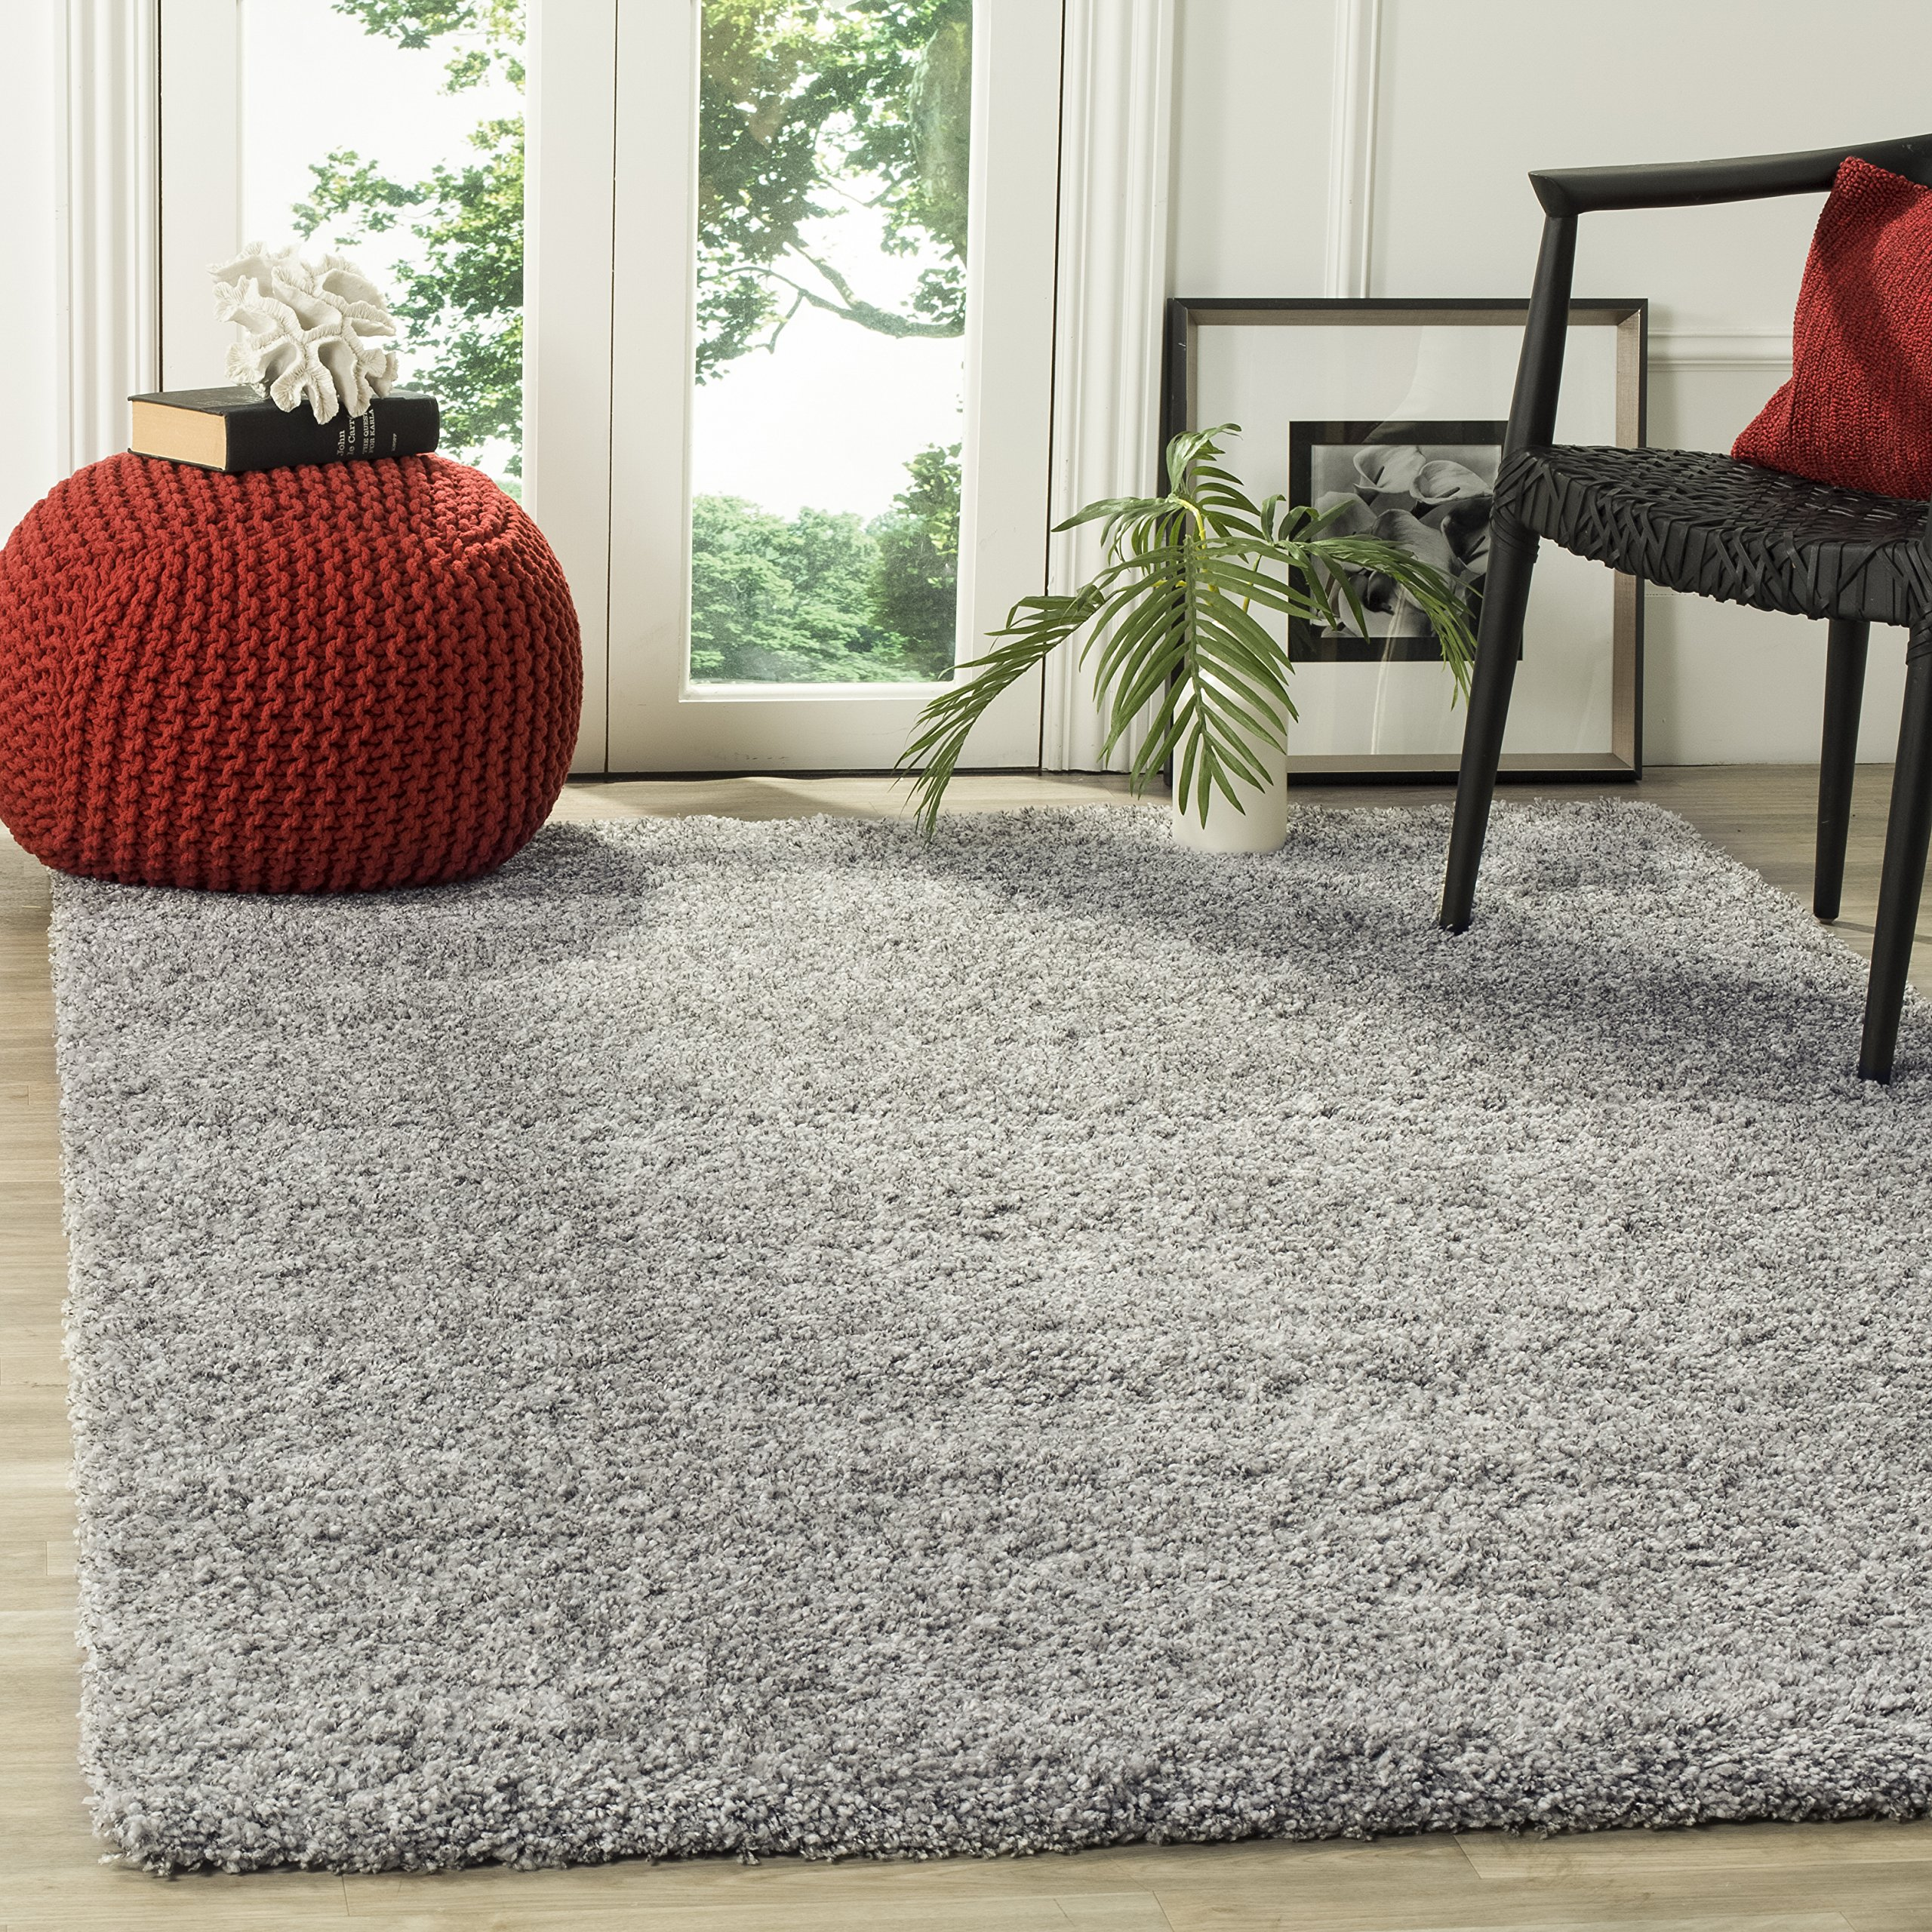 Safavieh California Shag Collection SG151-7575 Silver Area Rug (8' x 10')